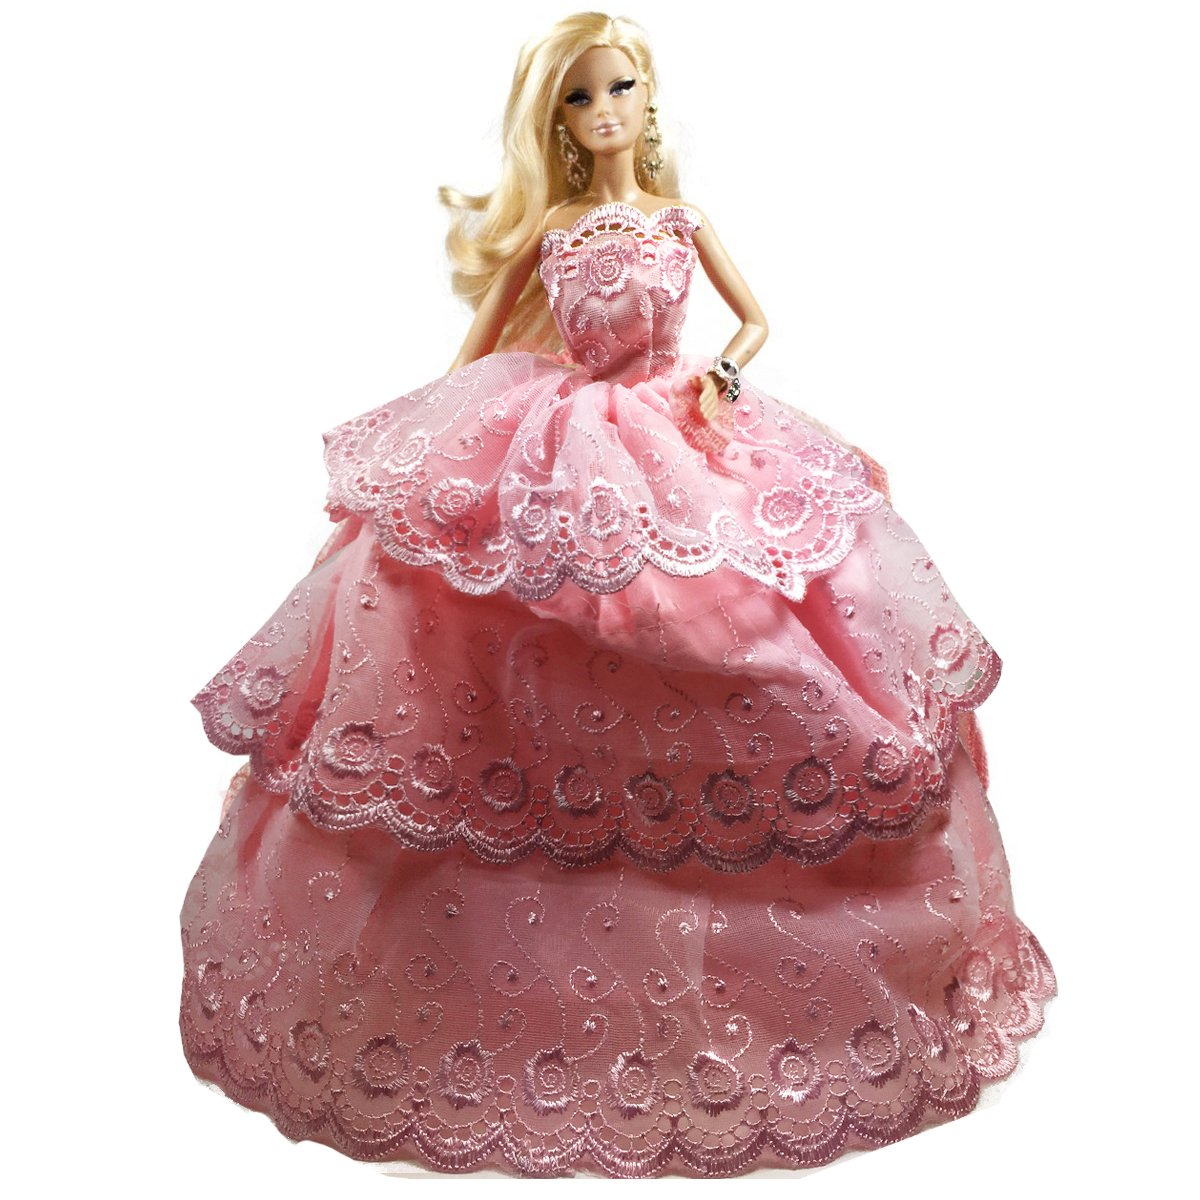 Barbie Pink Ball Gown Wedding Dress with Tiered Lace Trim Skirt Gown